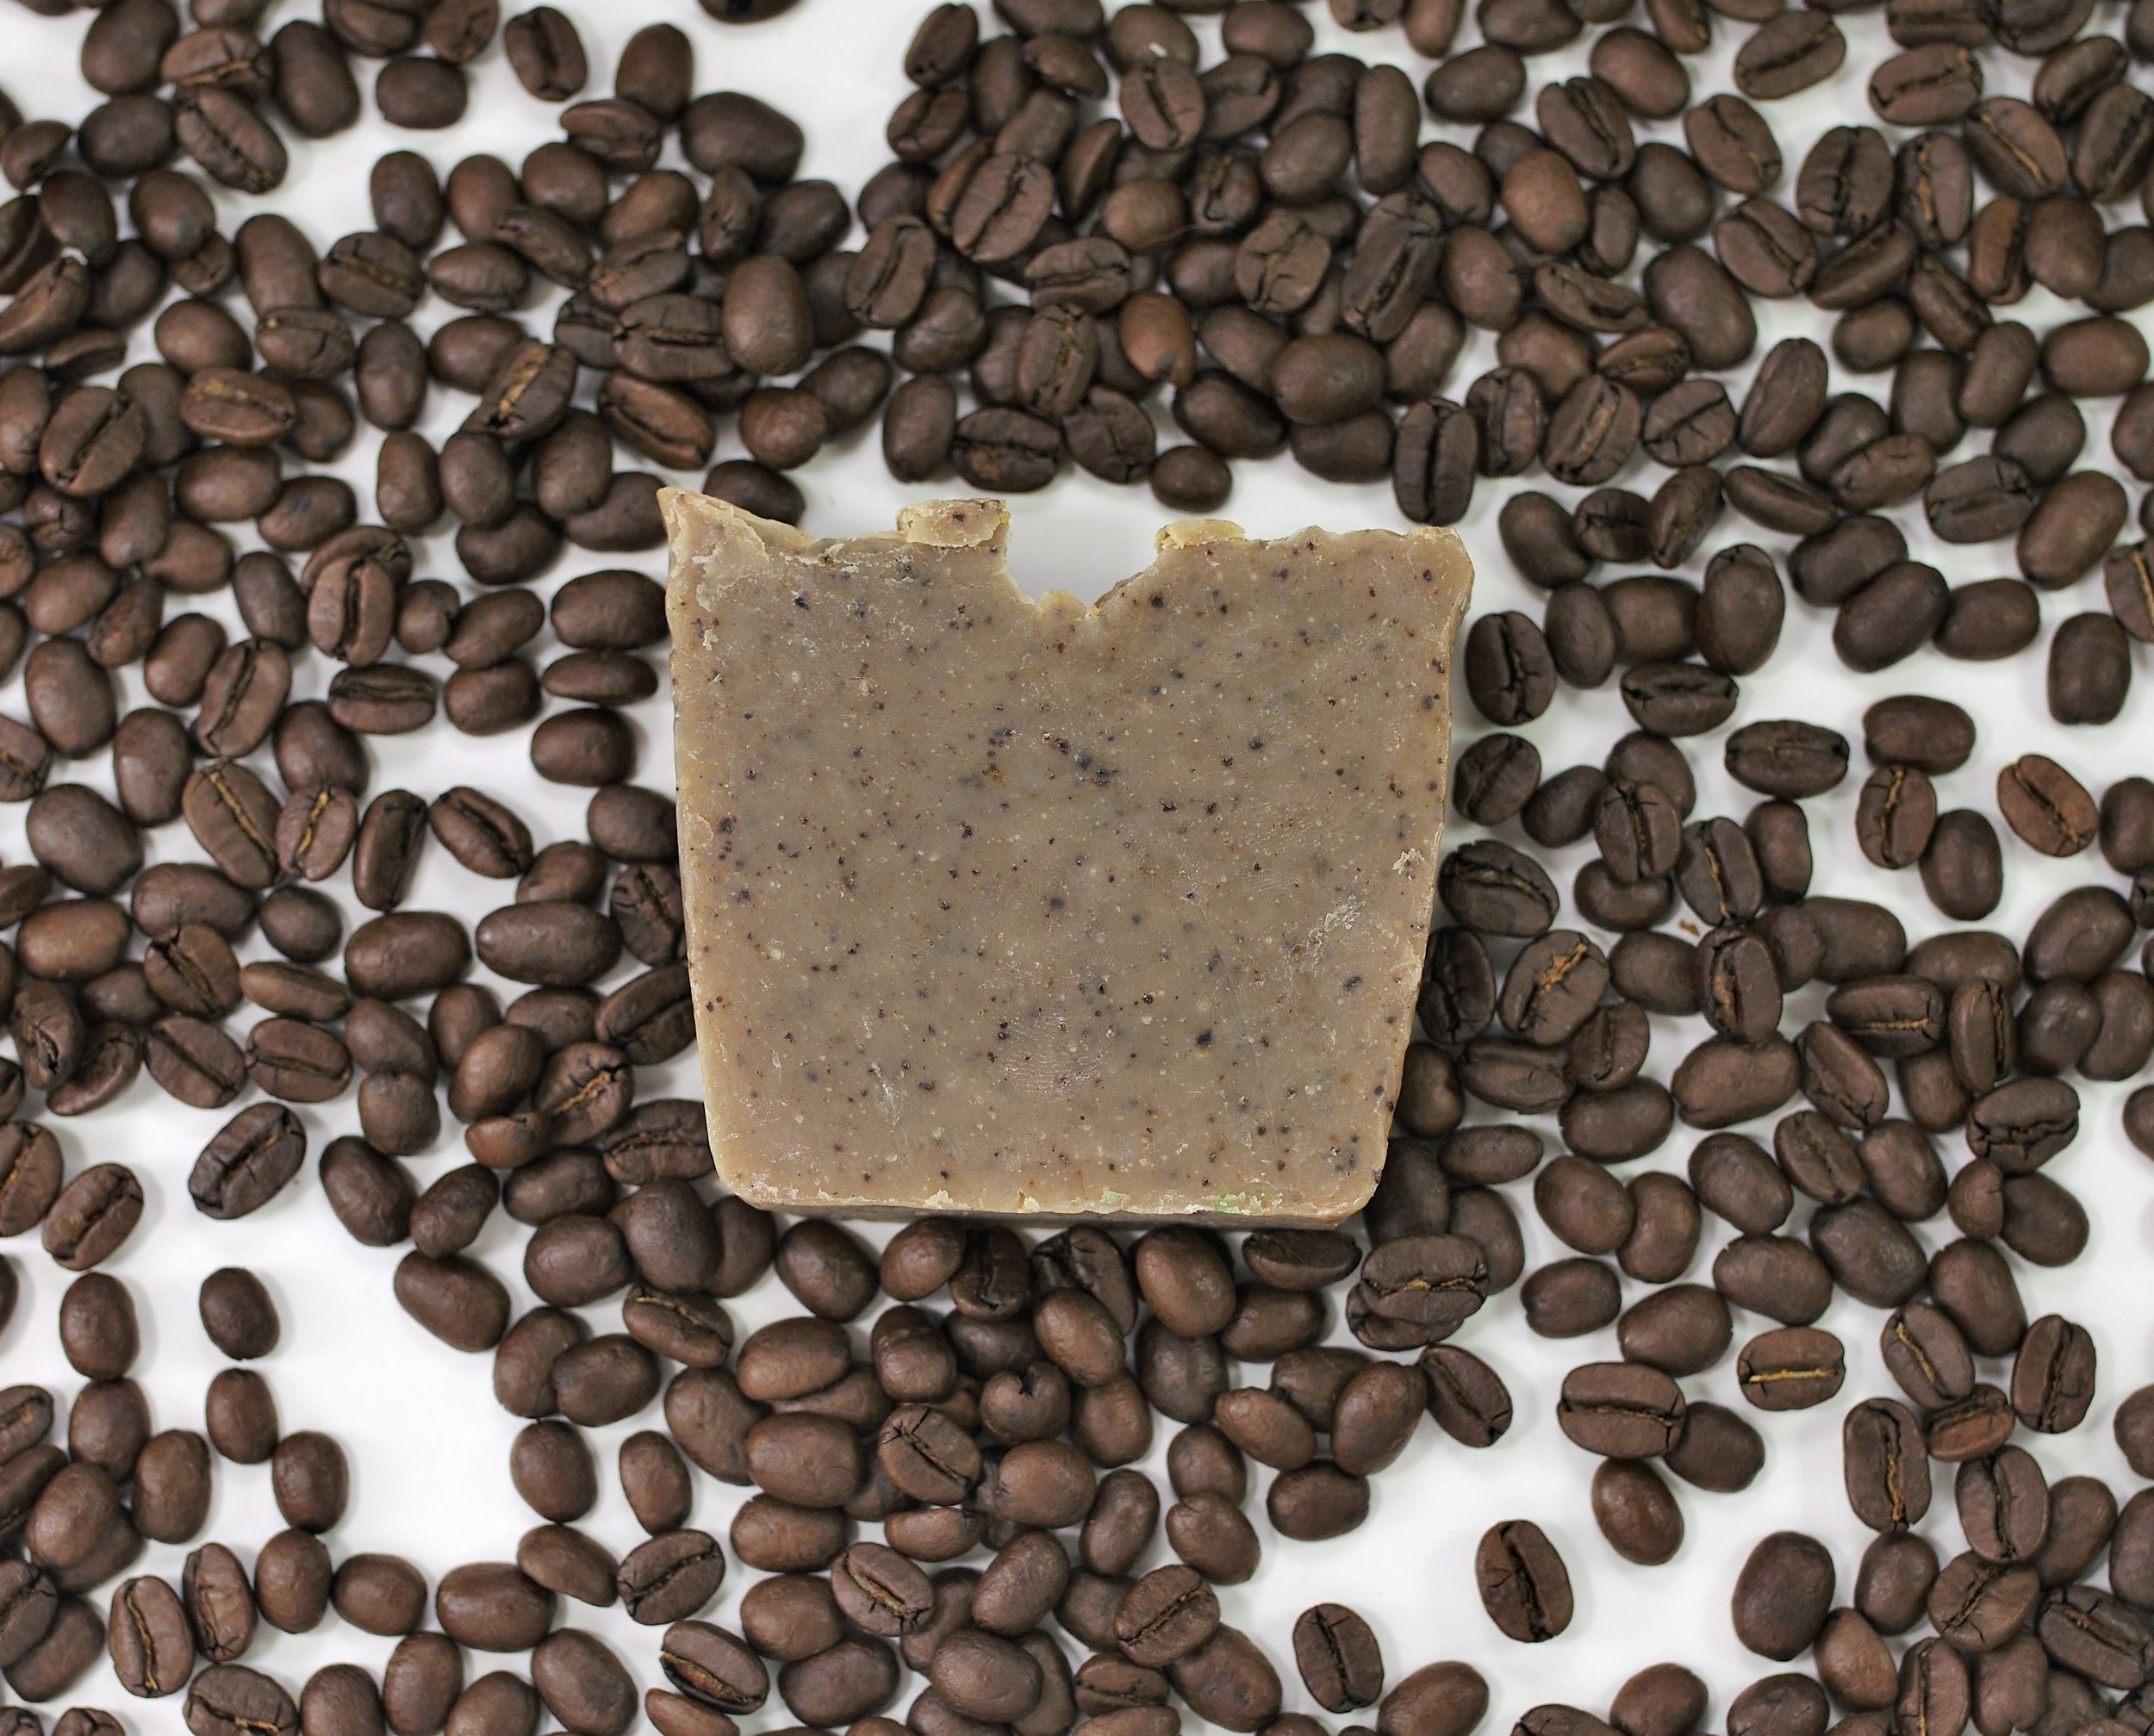 The best soap for your skin! - Made with espresso and ground coffee, a perfect scrub bar.